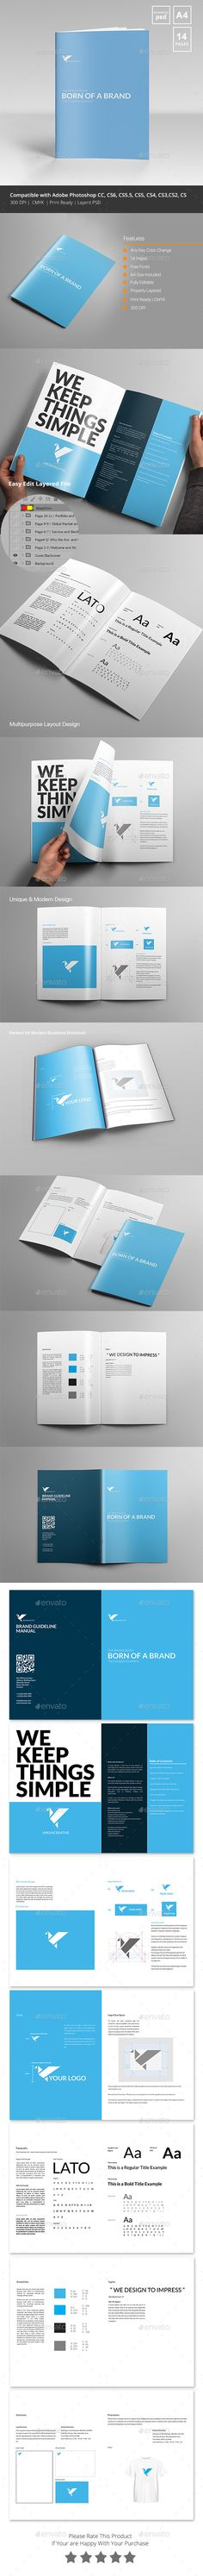 Brand Manual Template vol3 Brand manual, Font logo and Fonts - how to manual template